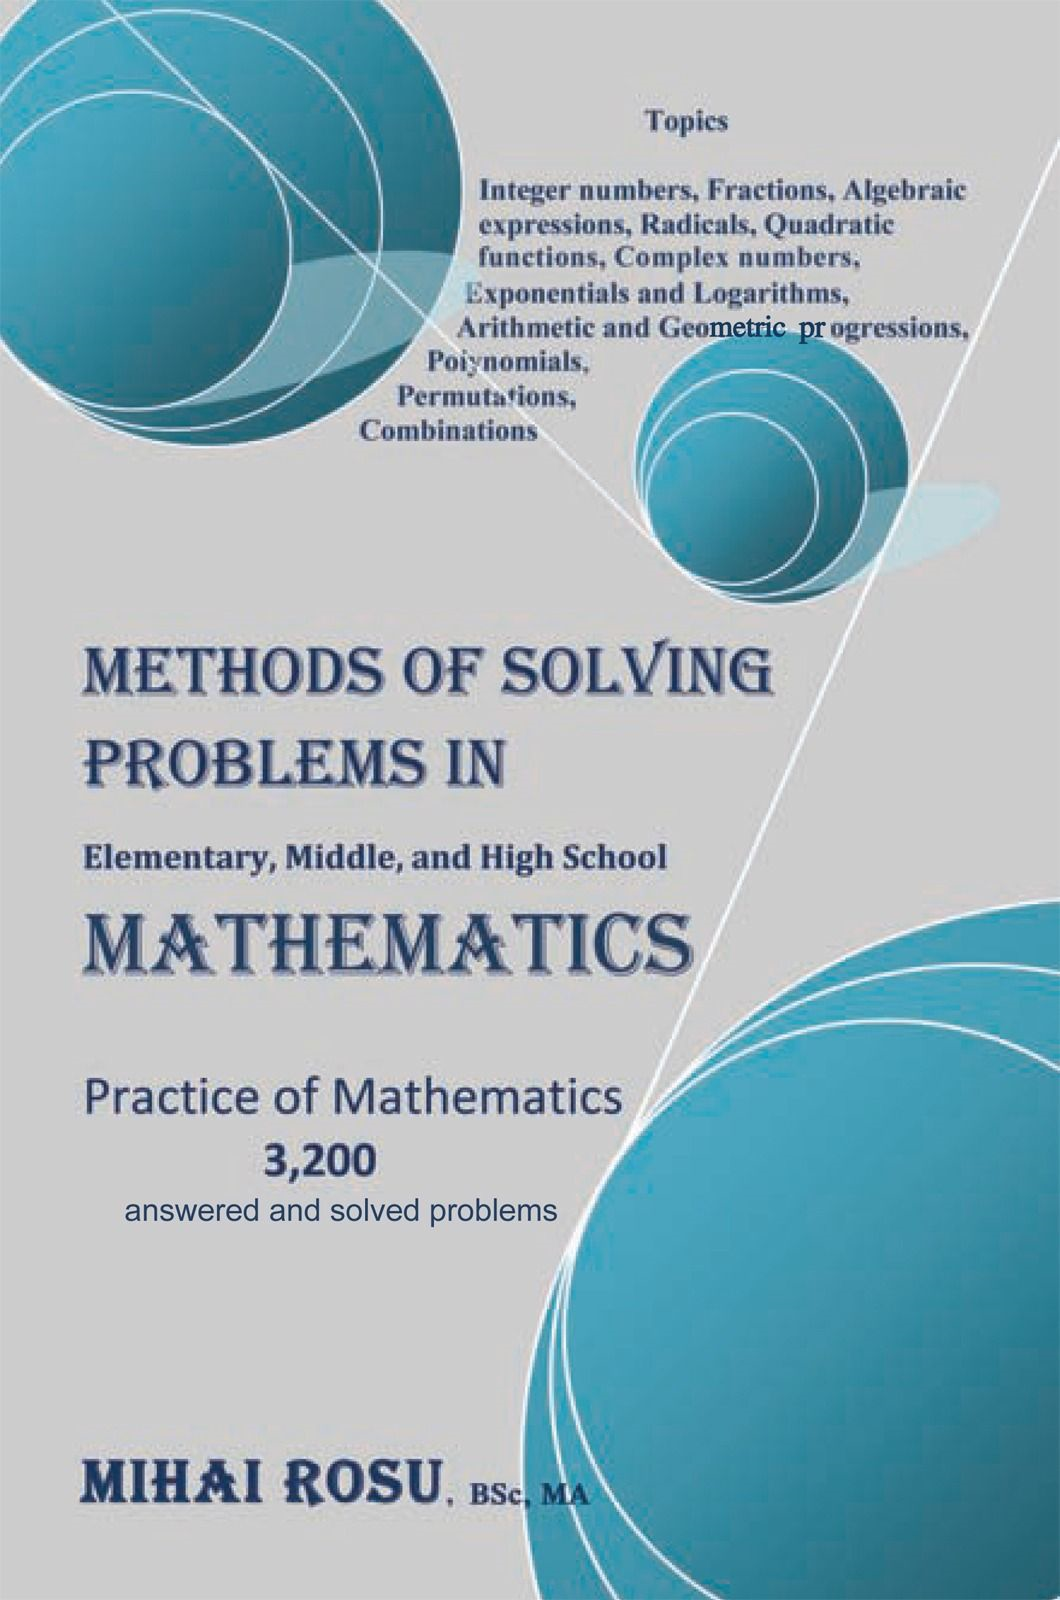 METHODS OF SOLVING PROBLEMS IN Elementary, Middle, and High School MATHEMATICS By: Mihai Rosu